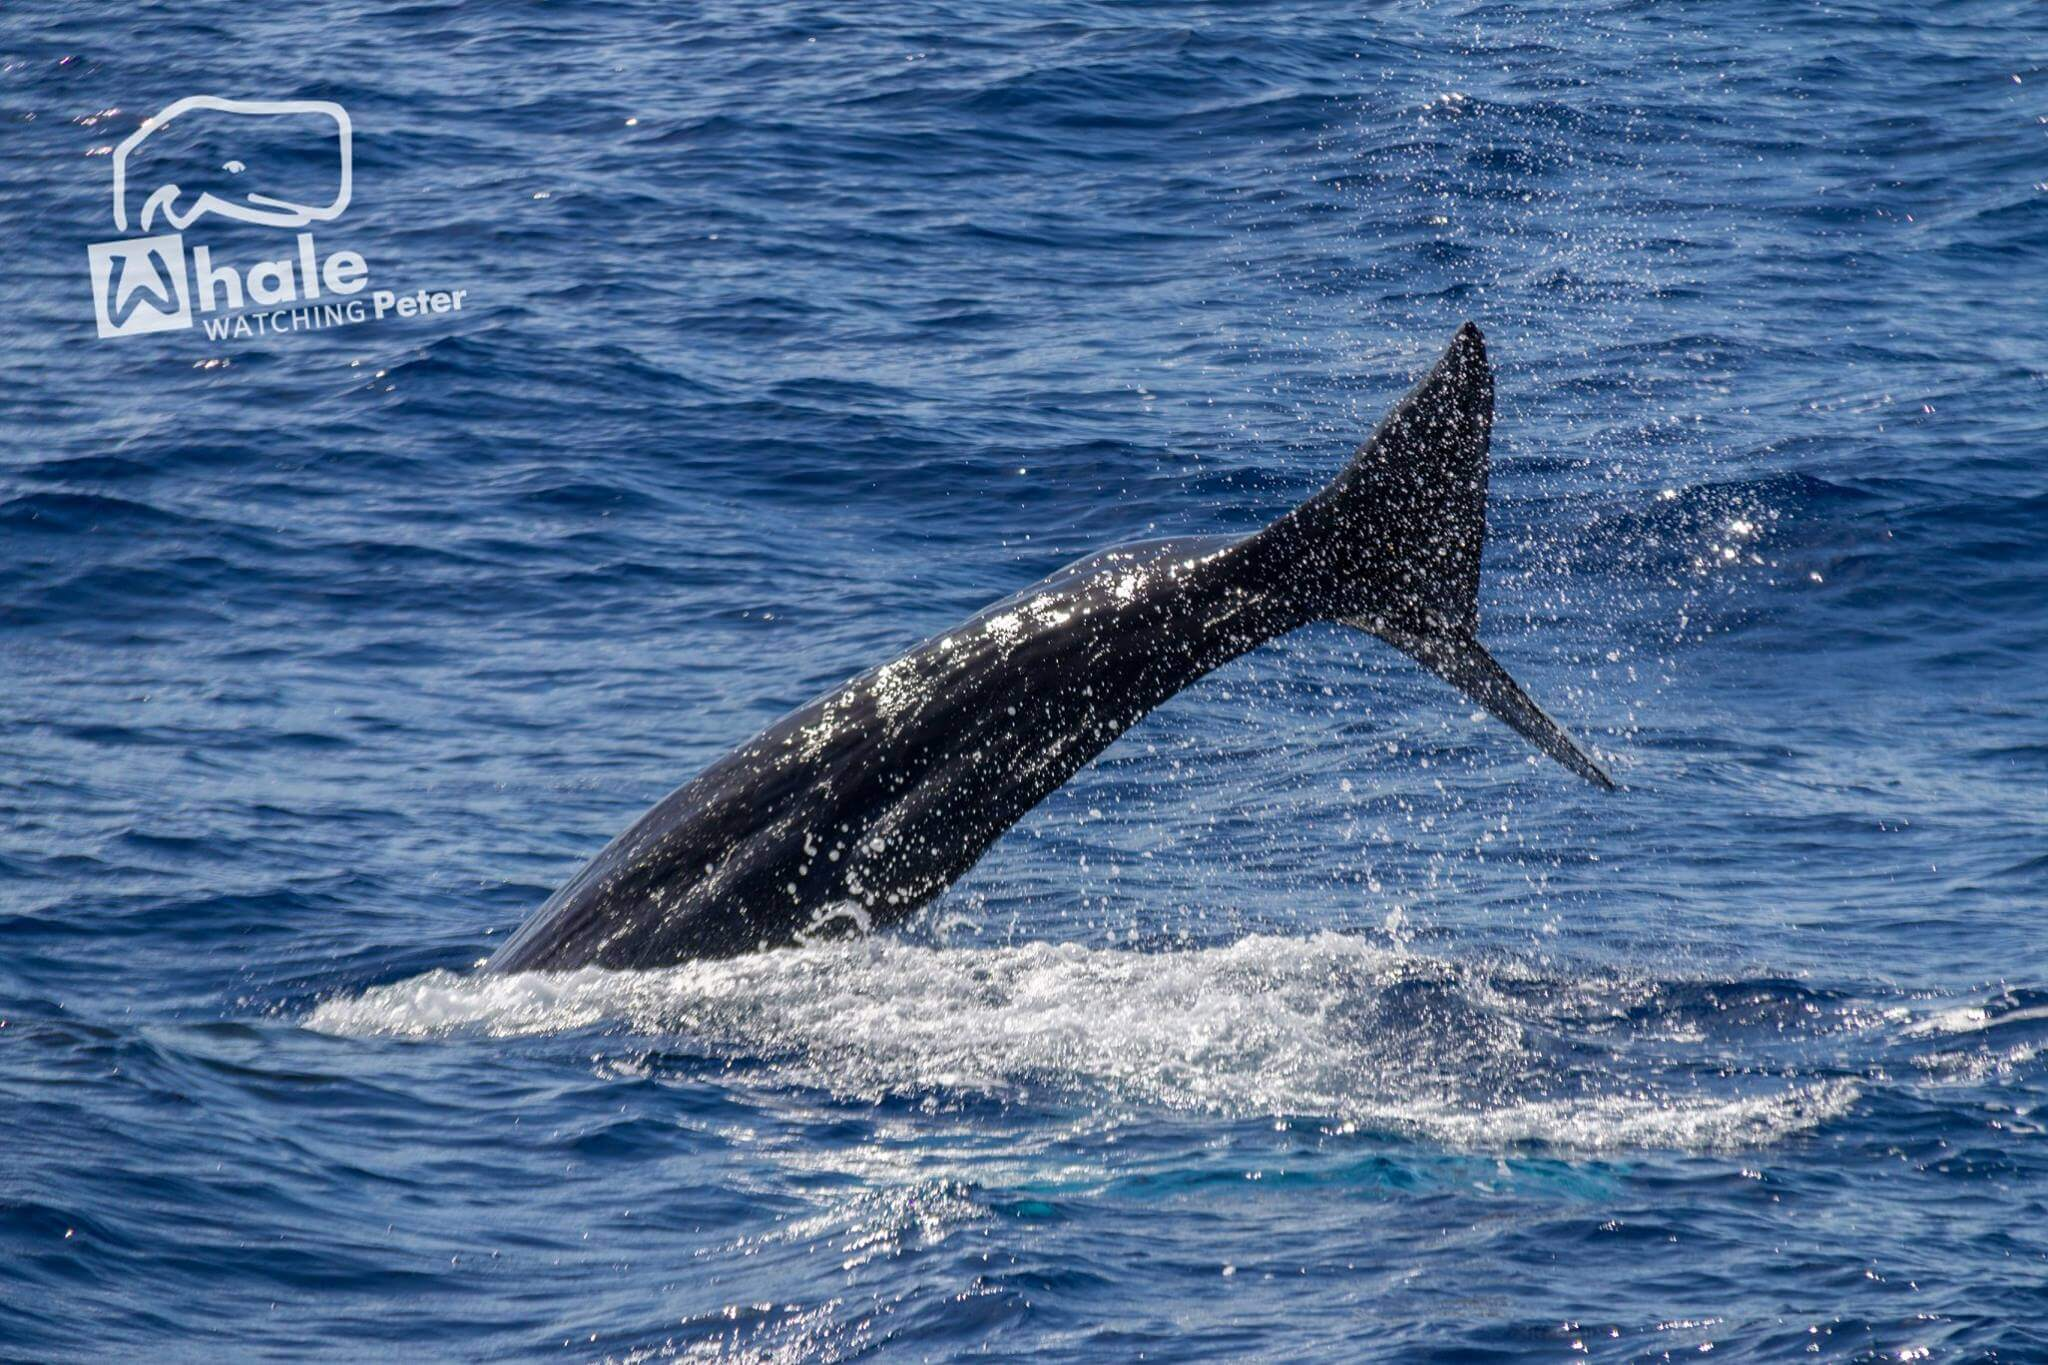 Dolphin and whale photography during whale watching activity with peter cafe sport